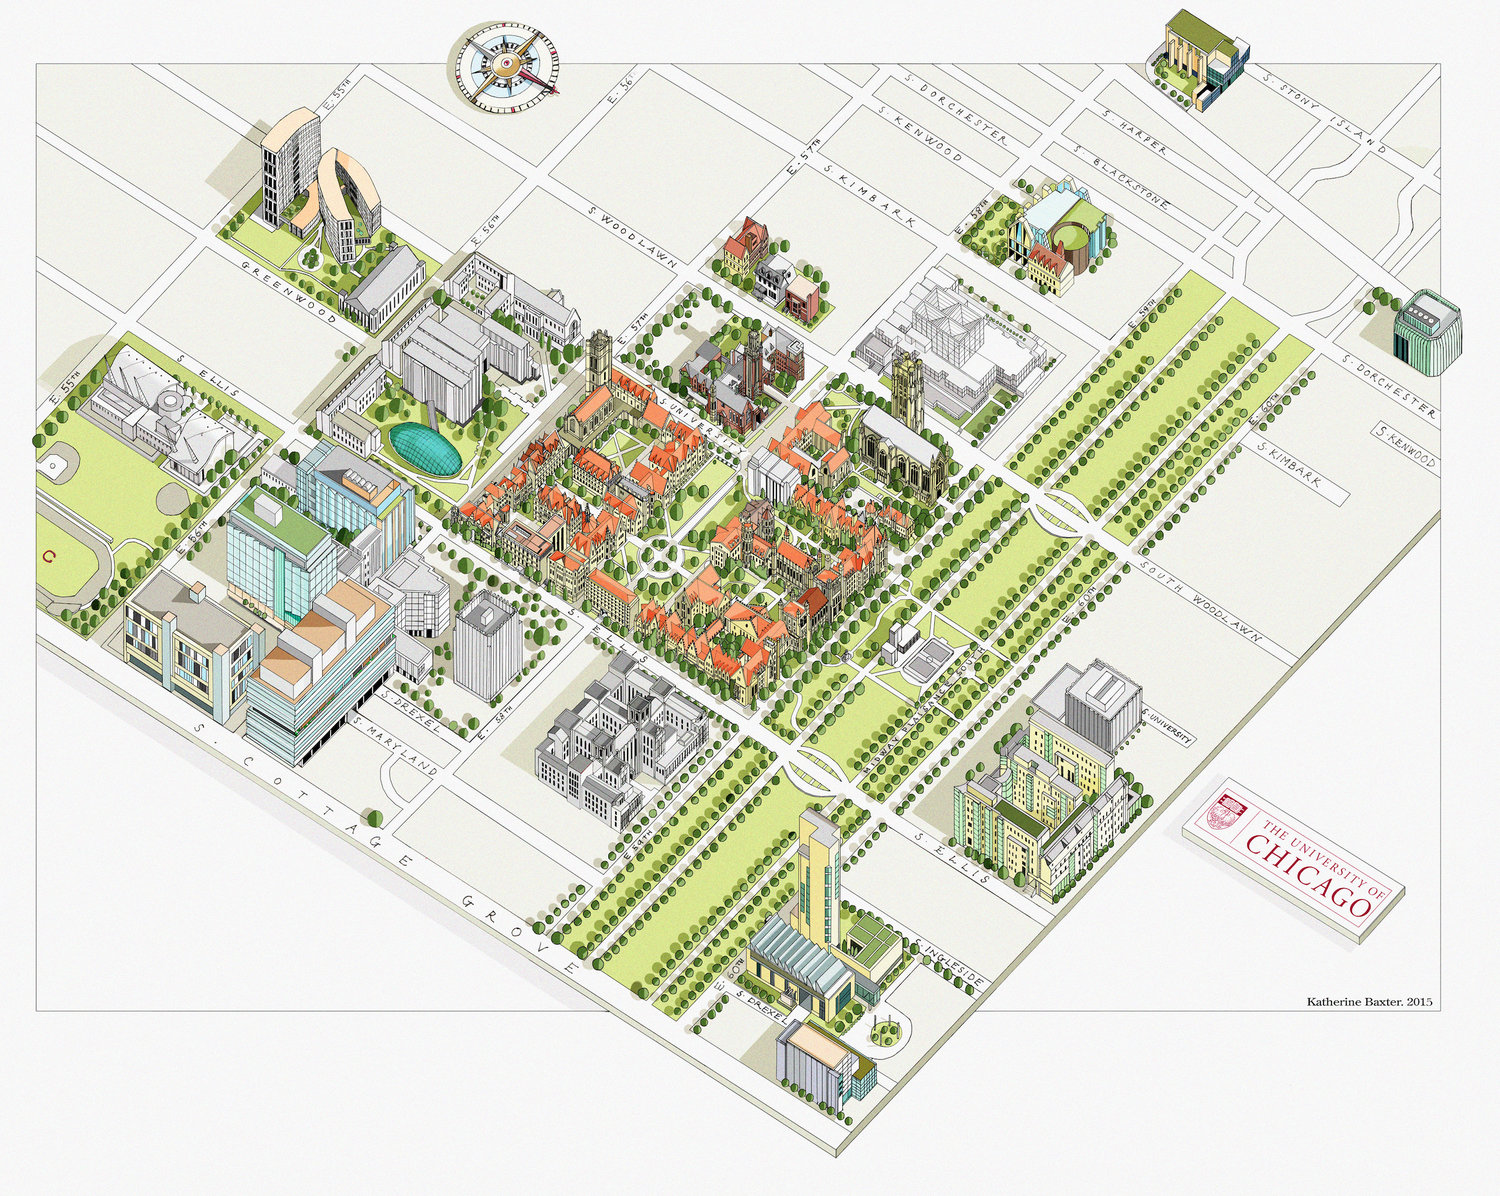 Katherine Baxter | Illustrated Maps Chicago University